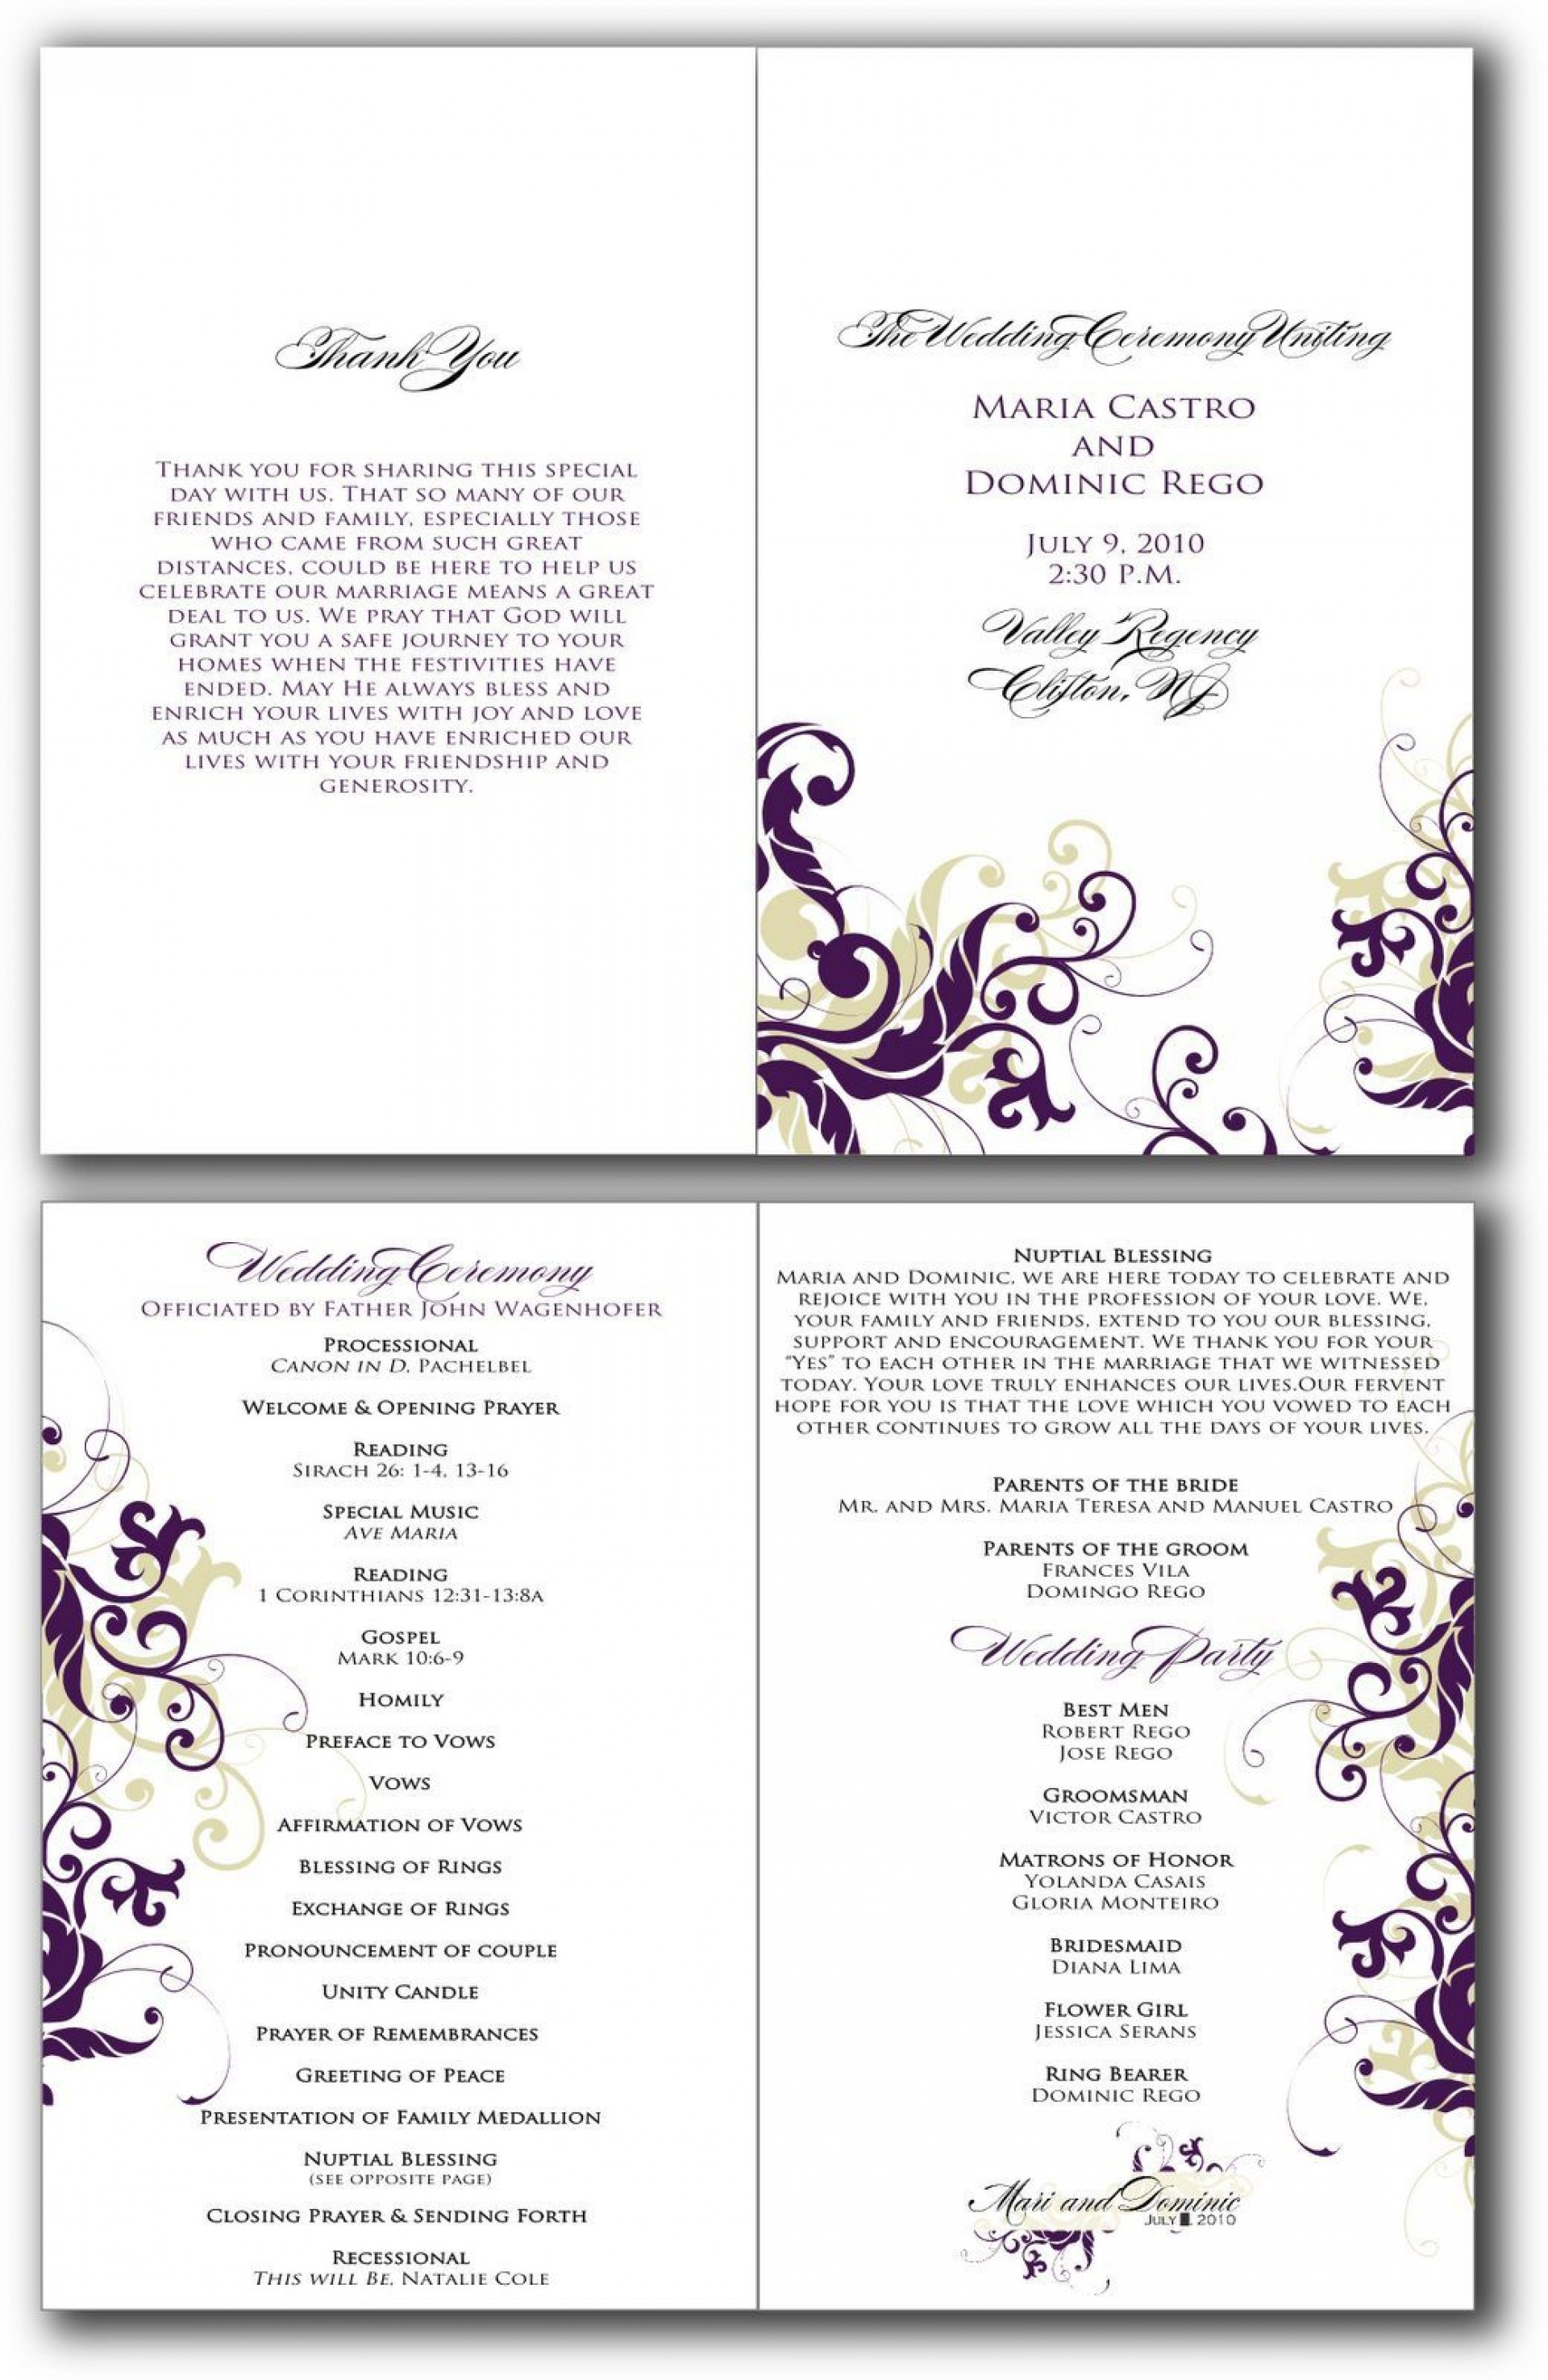 002 Impressive Free Church Program Template Design Concept 1920